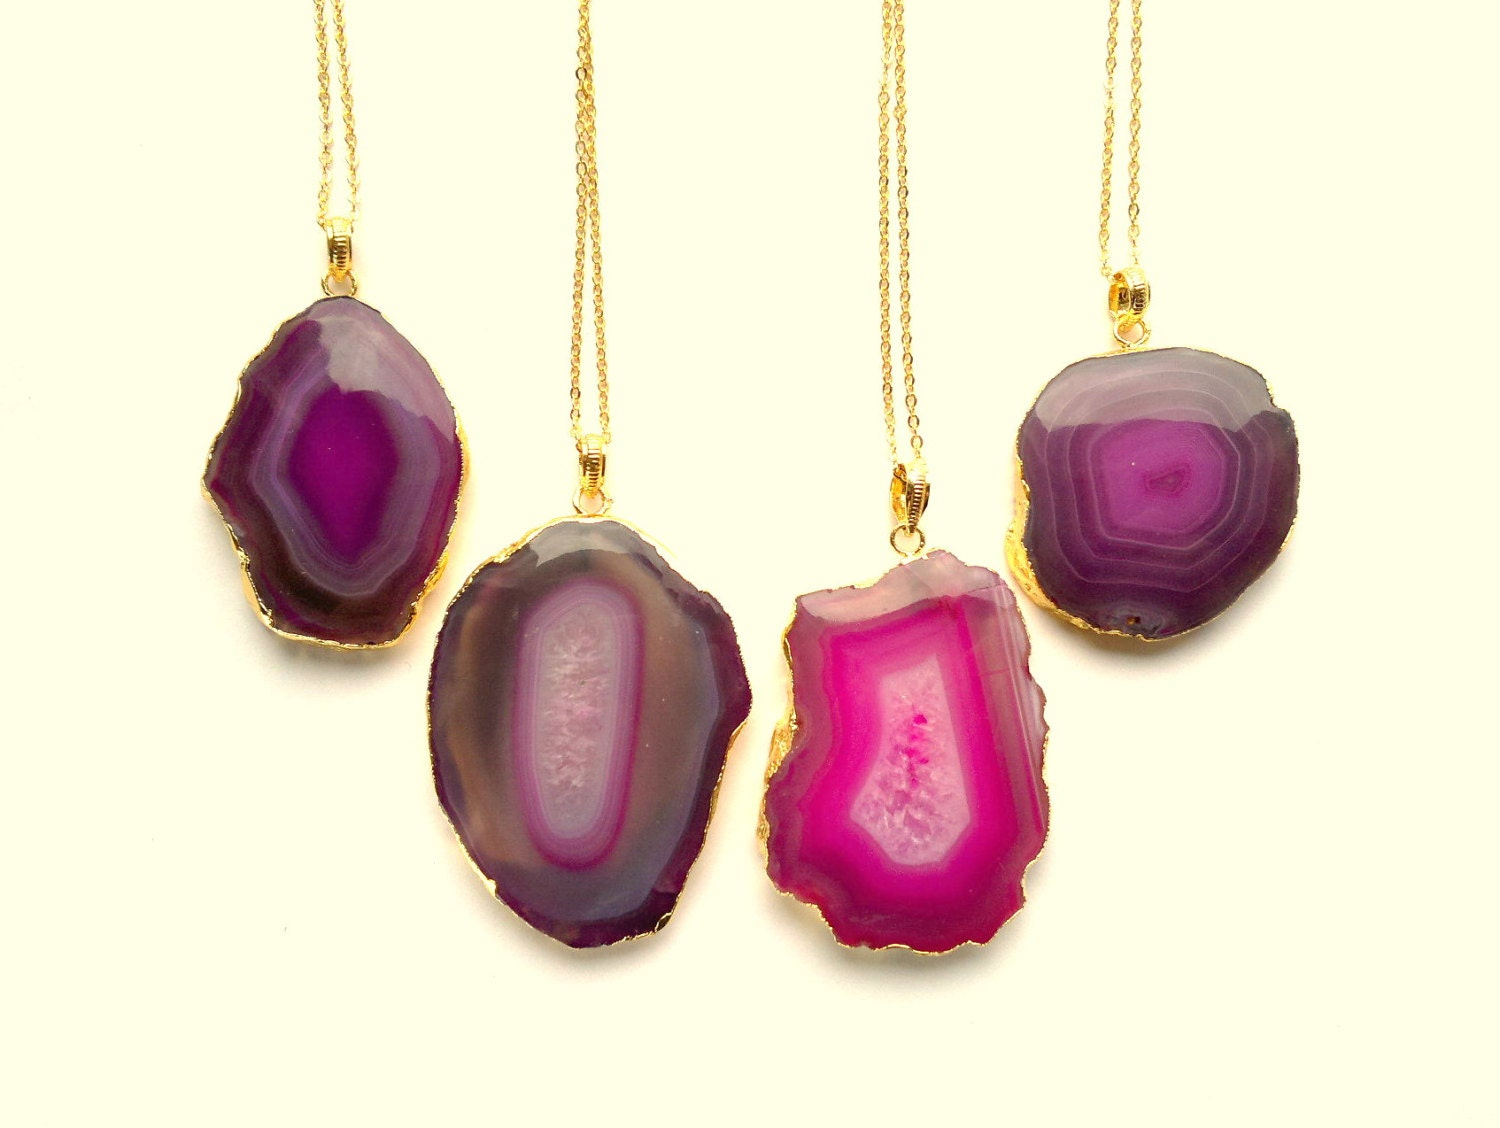 pink agate slice necklace agate pendant geode necklace pink